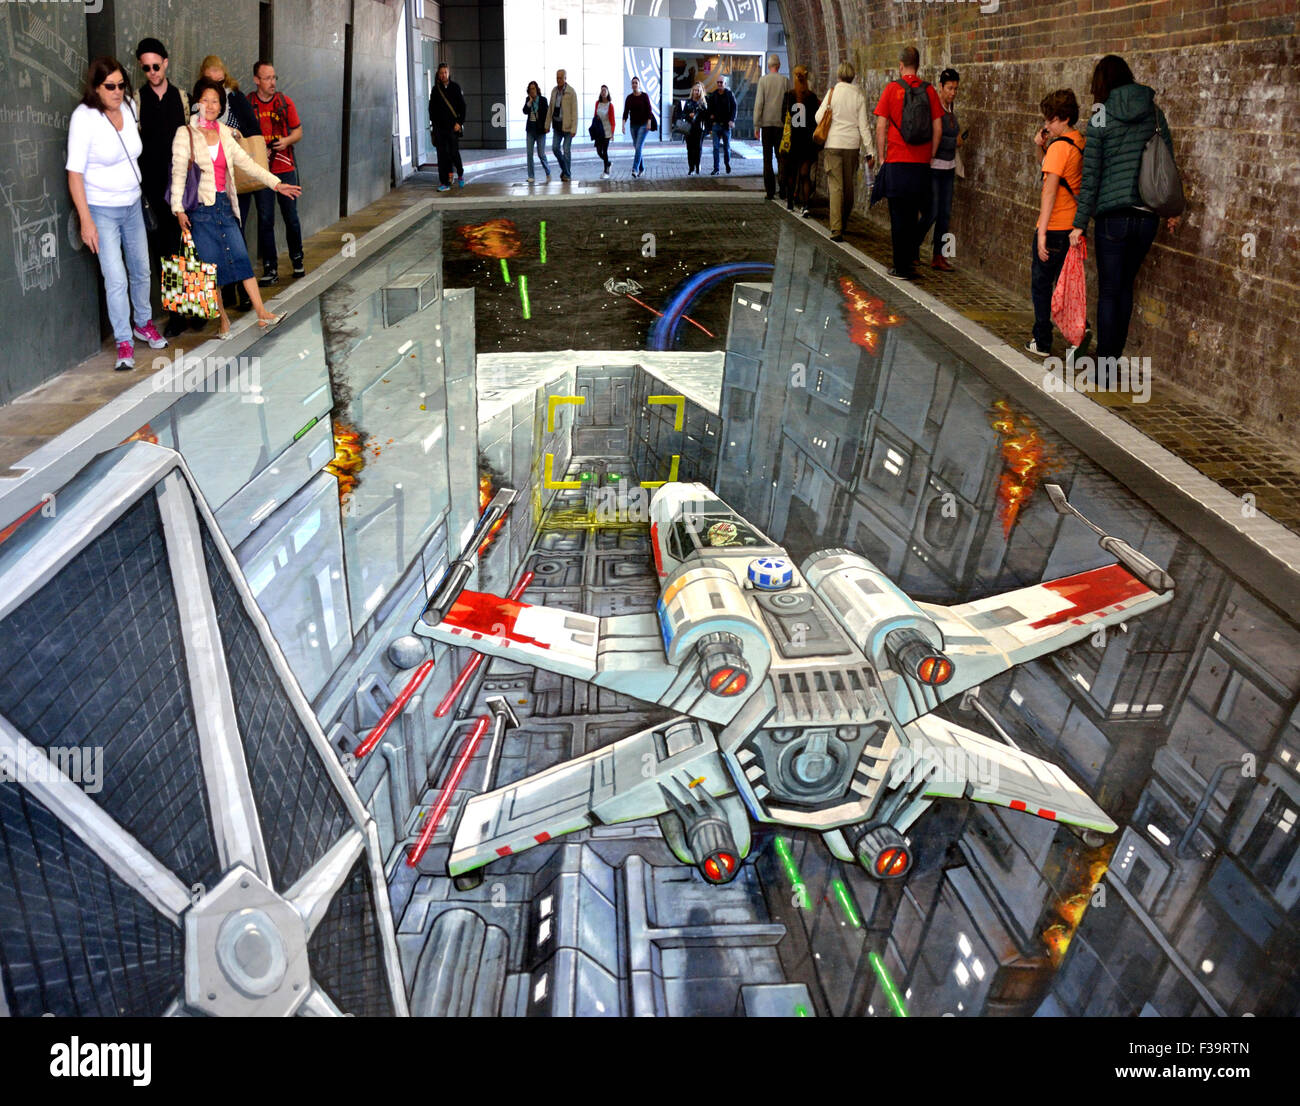 London, UK. 2nd October, 2015. 3D pavement art, created by 3D artists Joe and Max, depicting a scene from 'Star - Stock Image